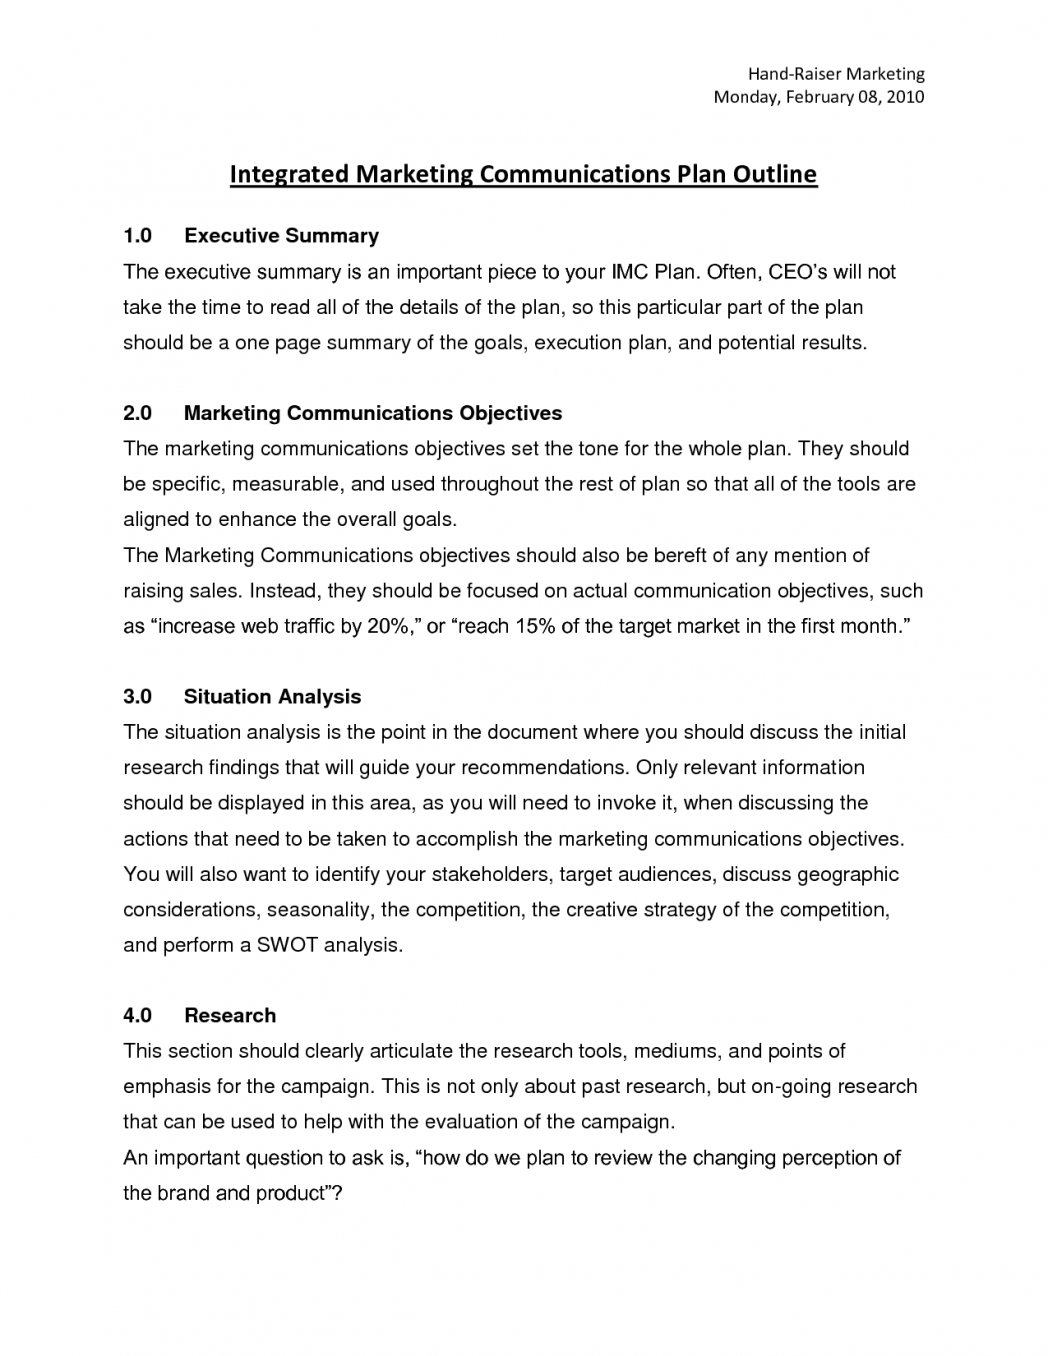 Doctorate thesis on marketing